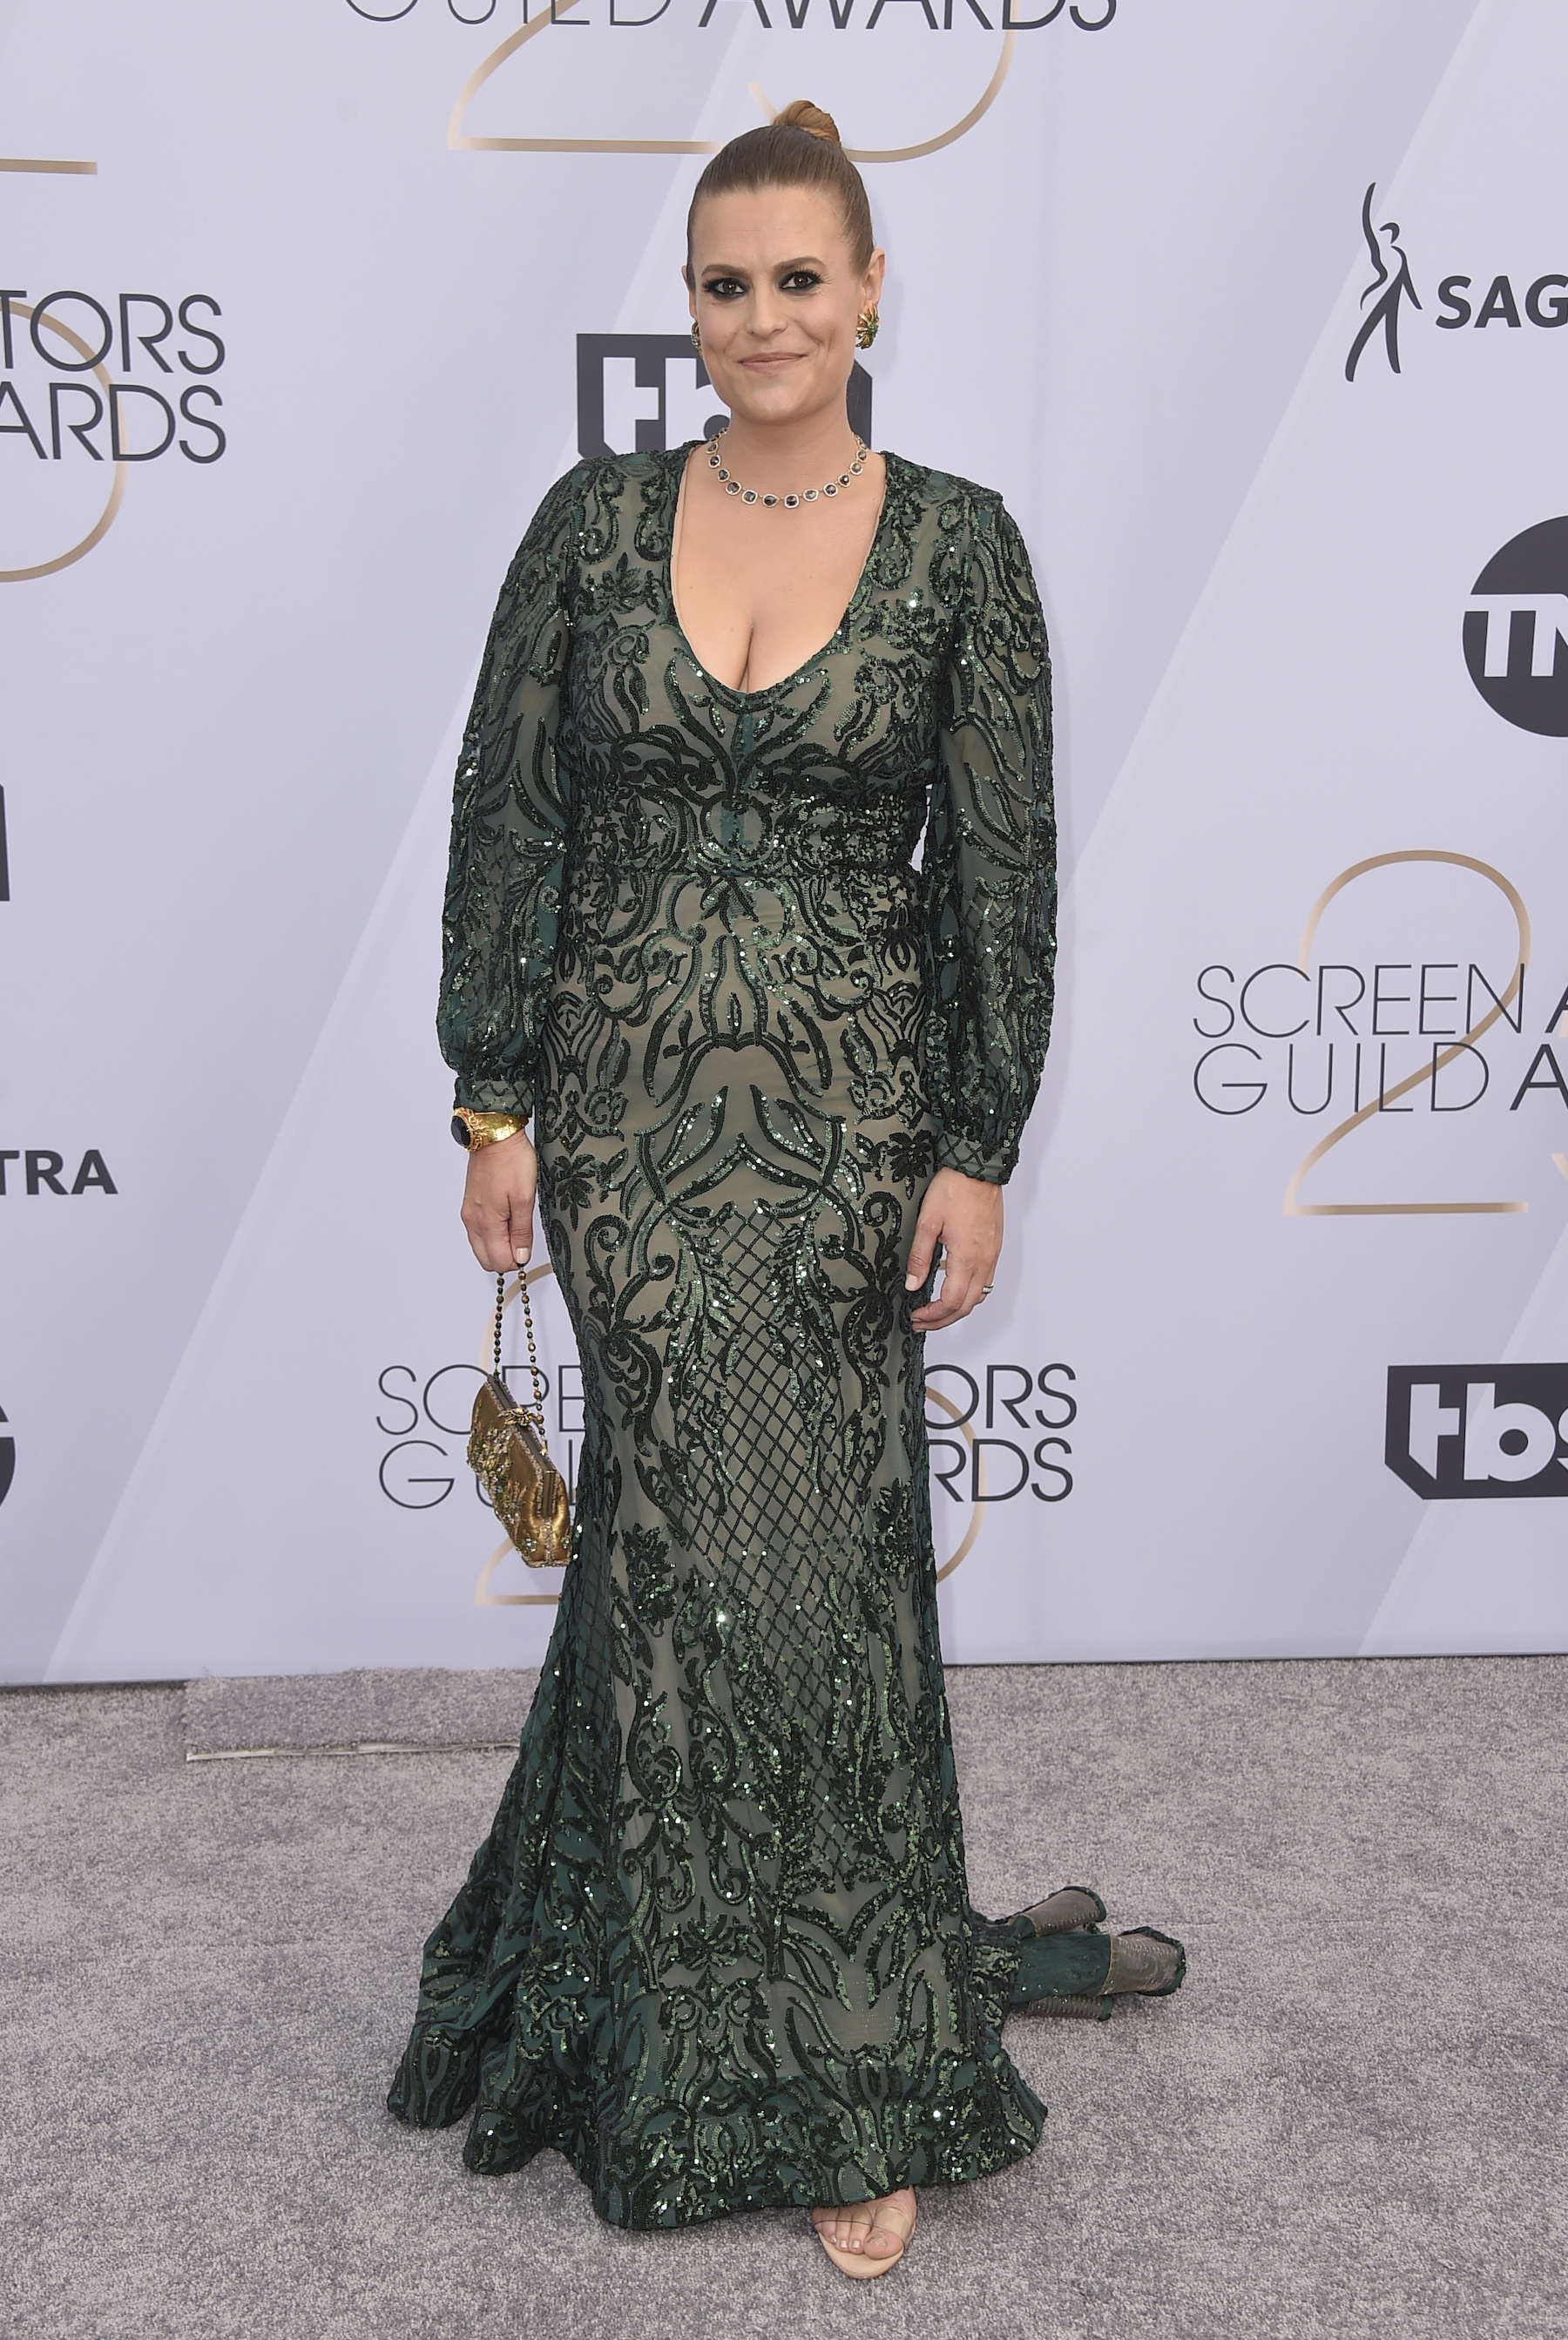 <div class='meta'><div class='origin-logo' data-origin='AP'></div><span class='caption-text' data-credit='Jordan Strauss/Invision/AP'>Marianna Palka arrives at the 25th annual Screen Actors Guild Awards at the Shrine Auditorium & Expo Hall on Sunday, Jan. 27, 2019, in Los Angeles.</span></div>